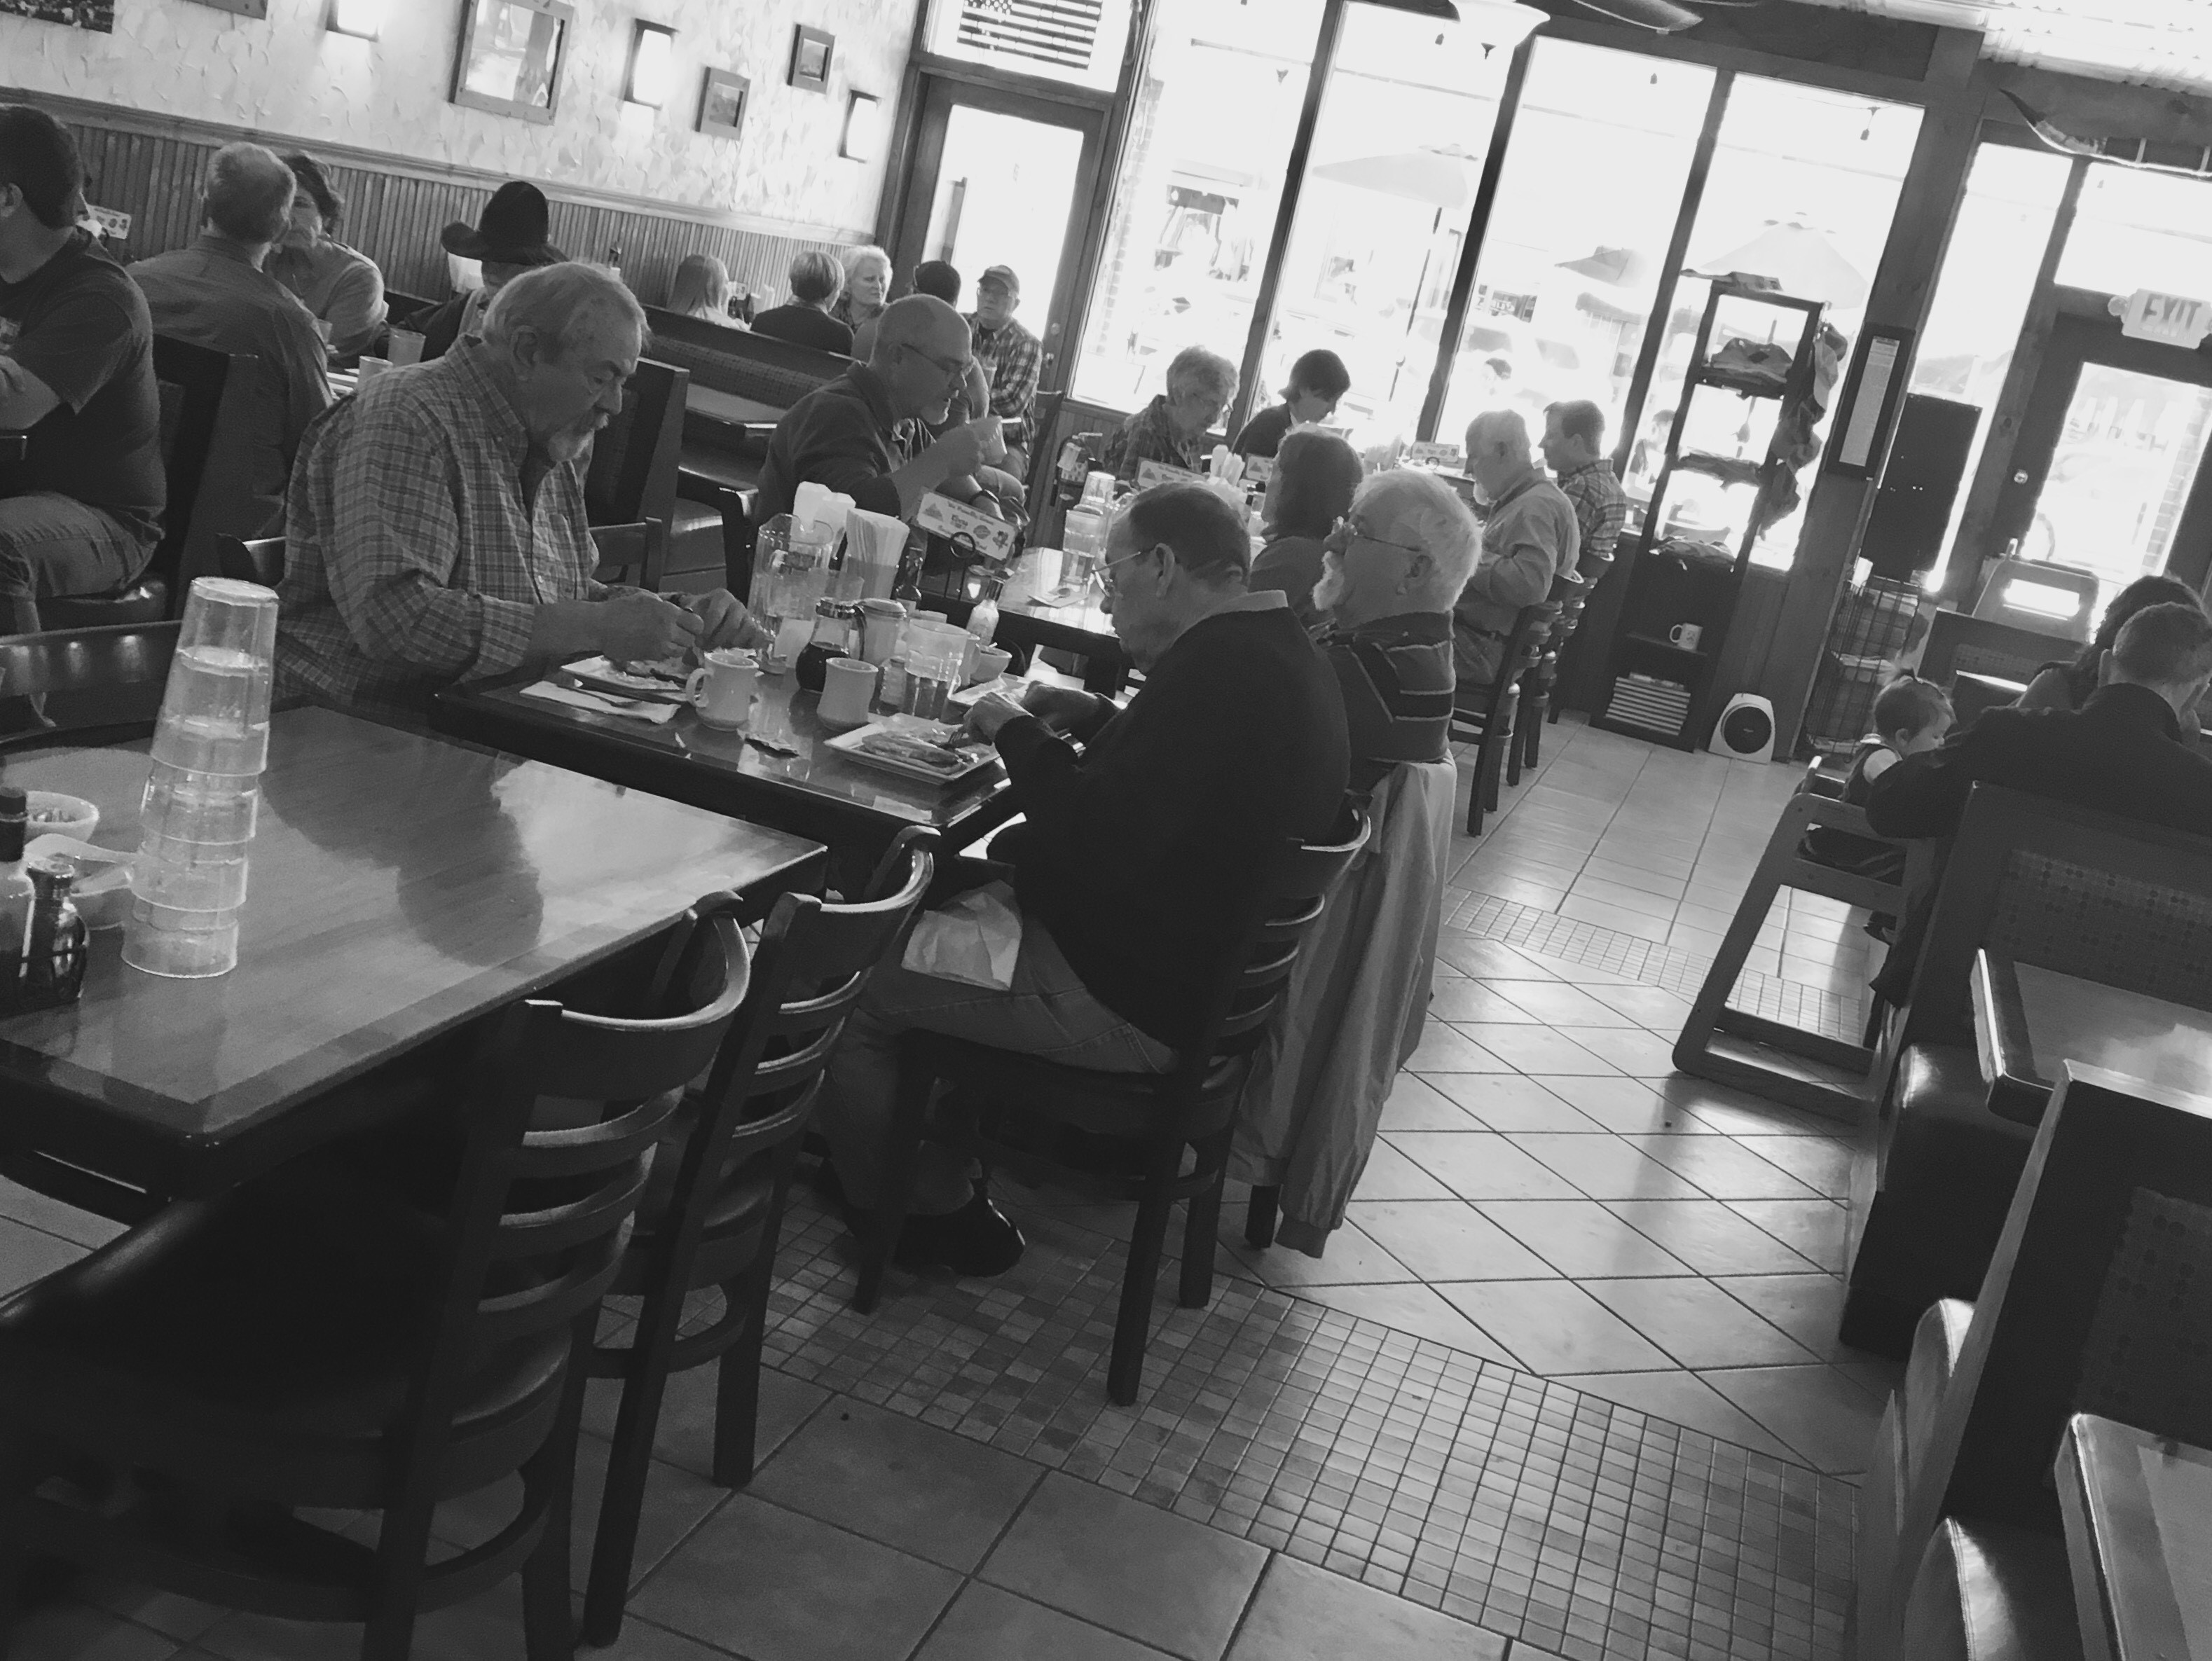 A black & white photo of people having breakfast in the restaurant